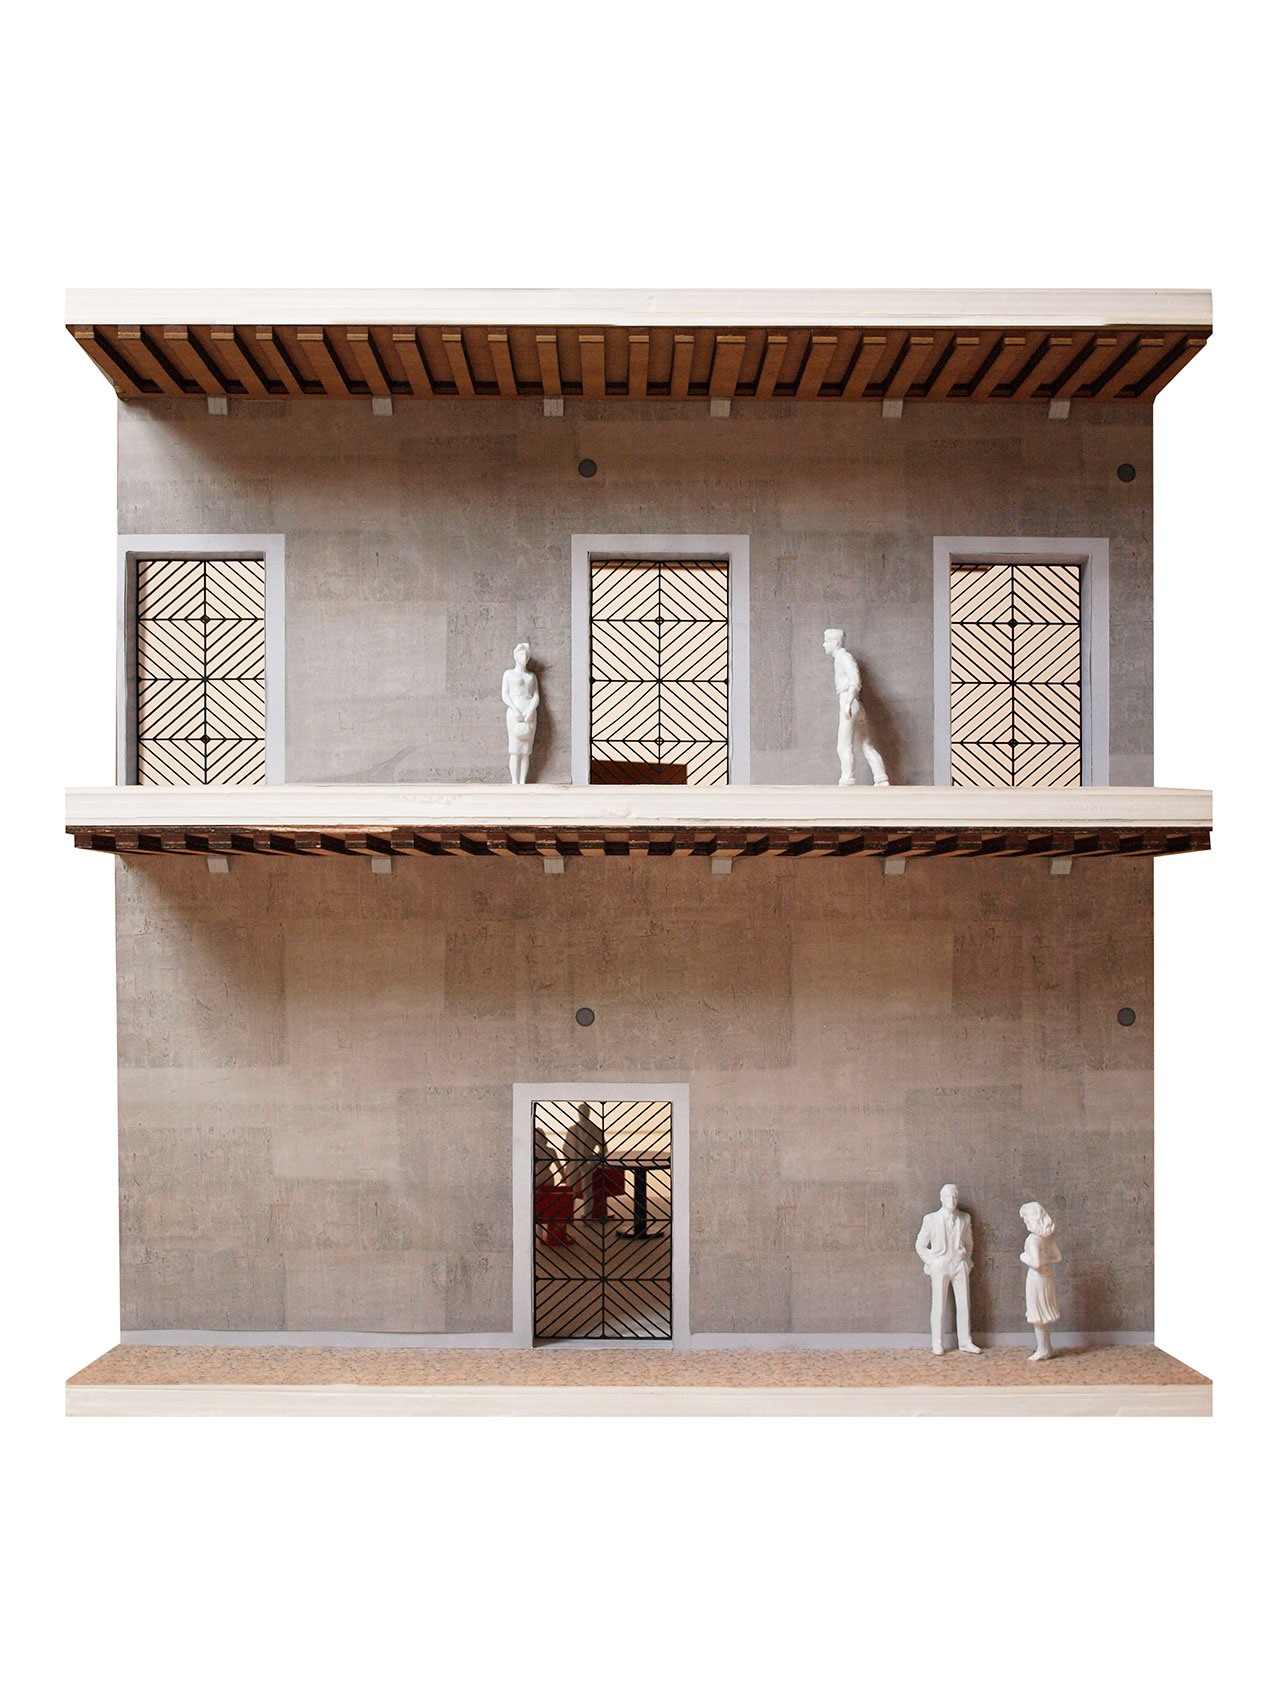 Il Fondaco dei Tedeschi, Gallerias with OMA designed gates, model picture. Image courtesy OMA.